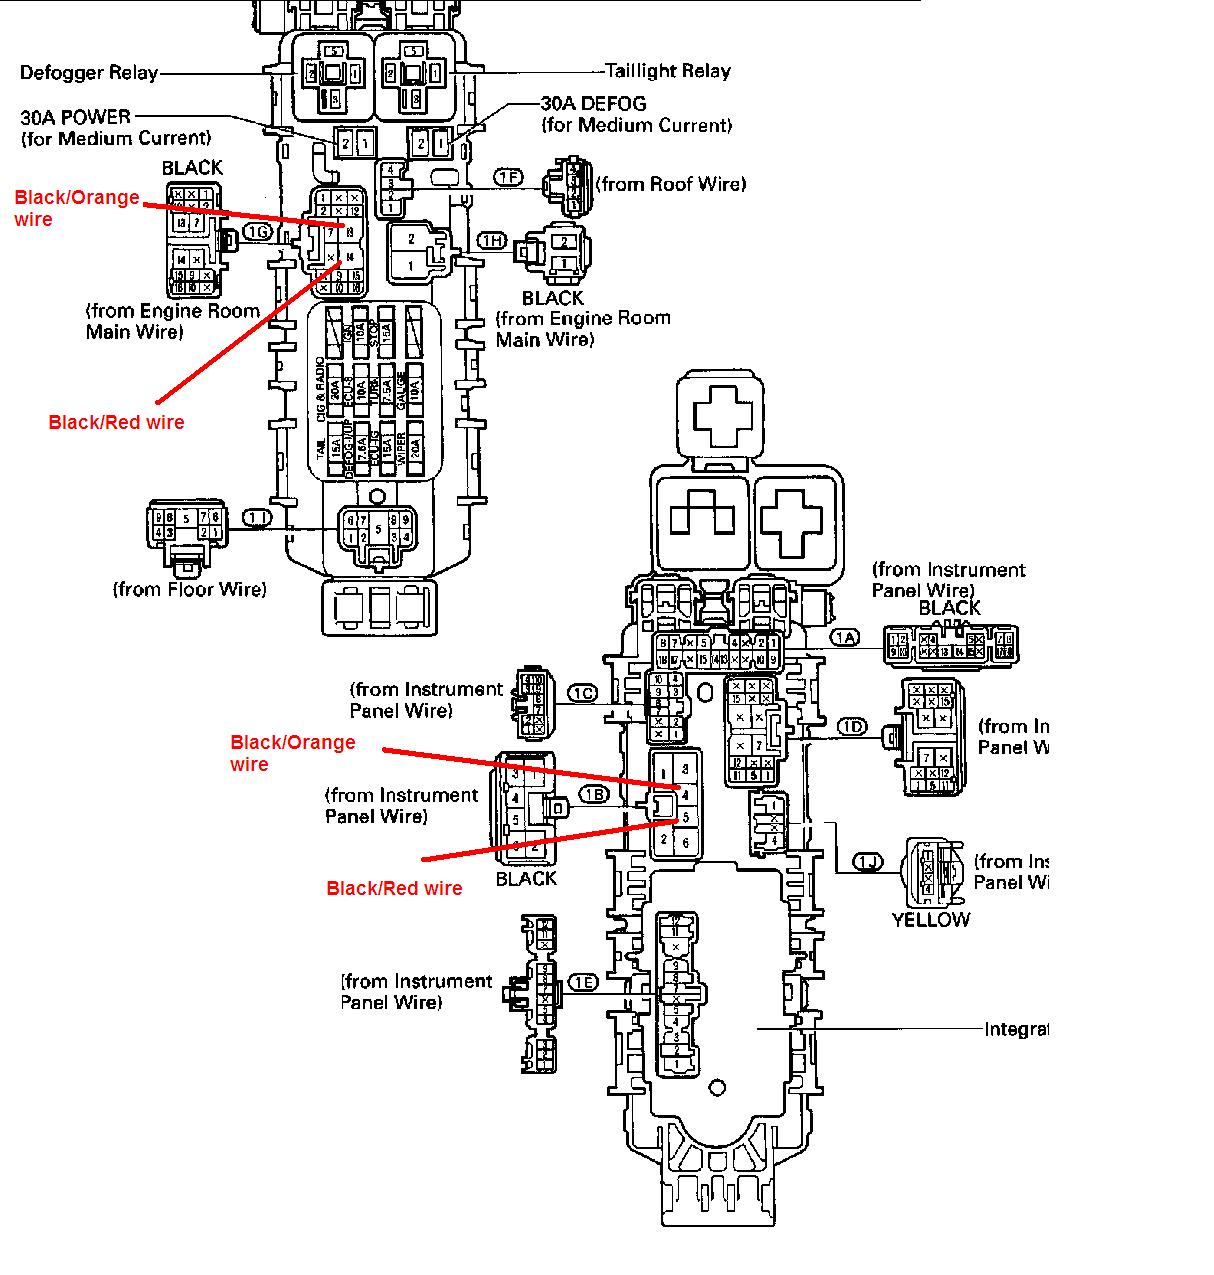 84 Camaro Ignition Wiring Diagram moreover Wiring Diagram For 2003 Ford Windstar as well Tail Light Wiring Diagram For 1992 Honda Accord also 6k9y5 Ford Explorer 4x4 Need Wiring Diagram Includes Control as well 94 Chevy Truck Transmission Wiring Diagram. on honda stereo wiring diagram 1995